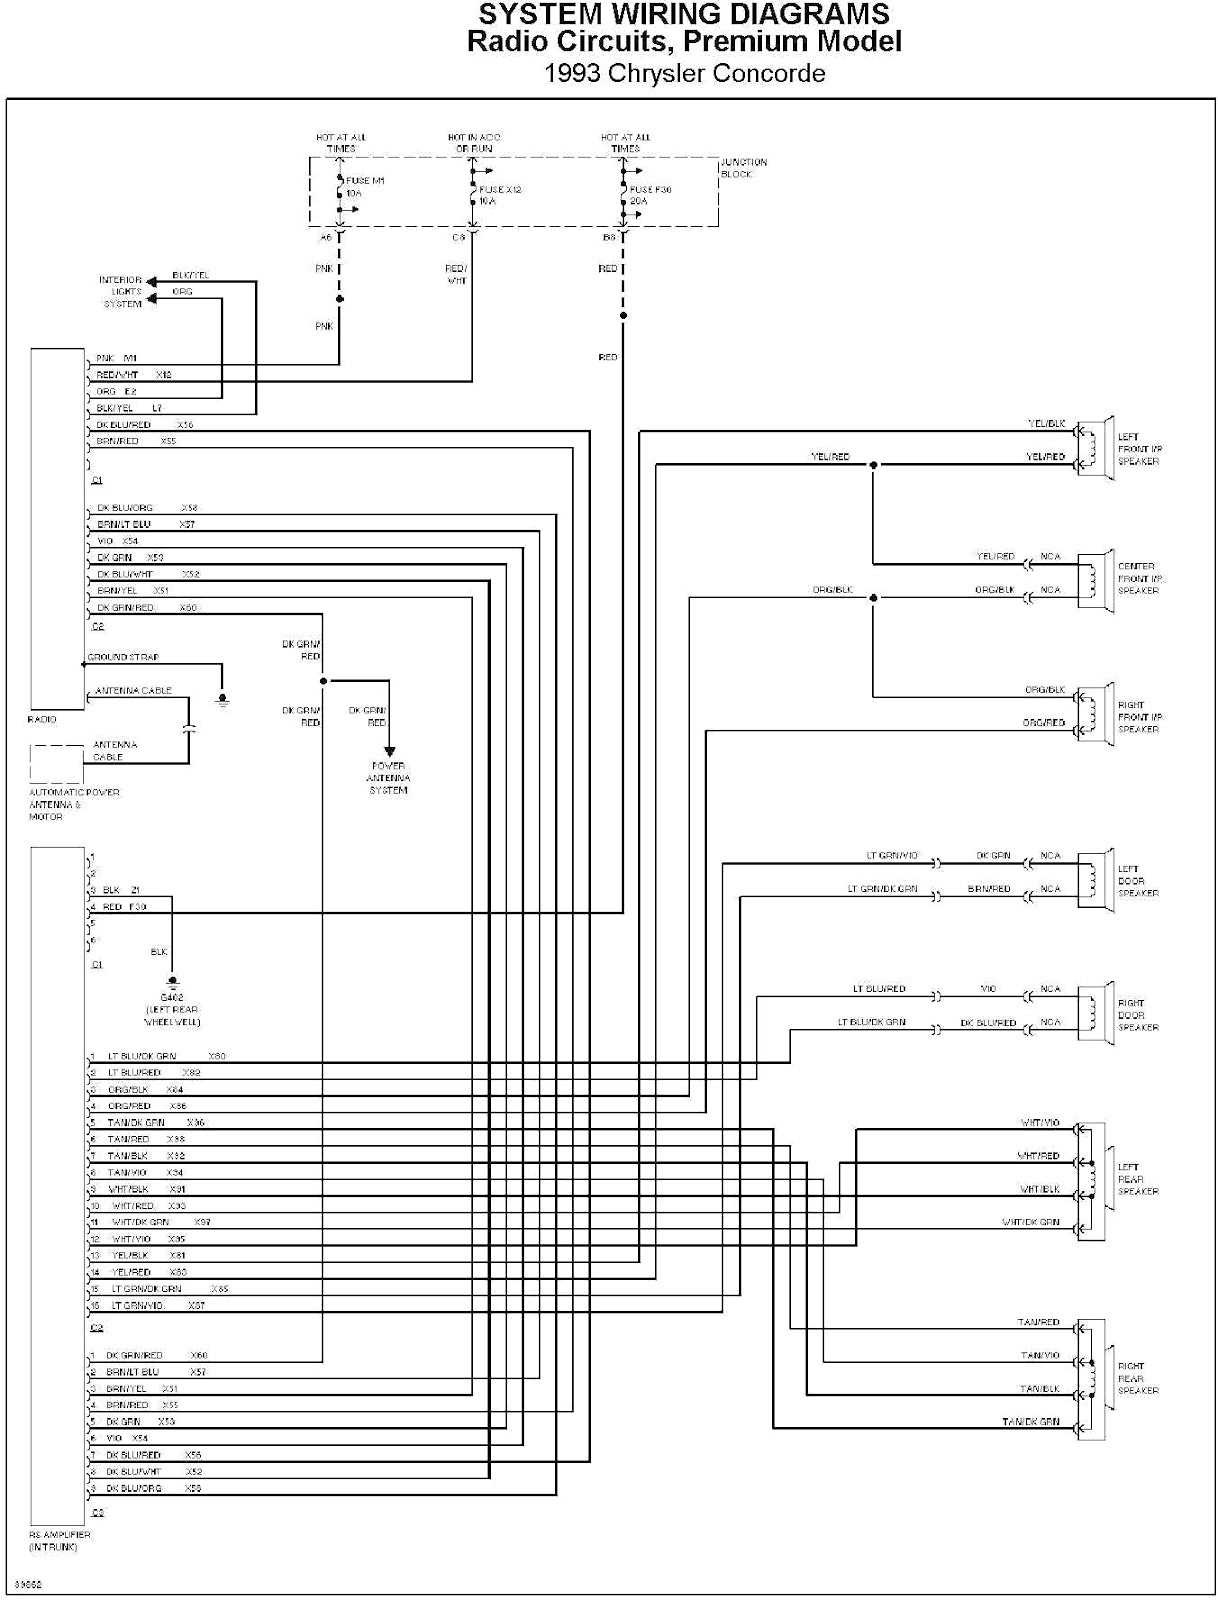 2007 Chrysler 300 Engine Diagram How To Change Timing Belt Dodge 3 5l Diagrams Harley Davidson Radio Wiring For 0900c Bba2 Gif Bright Of